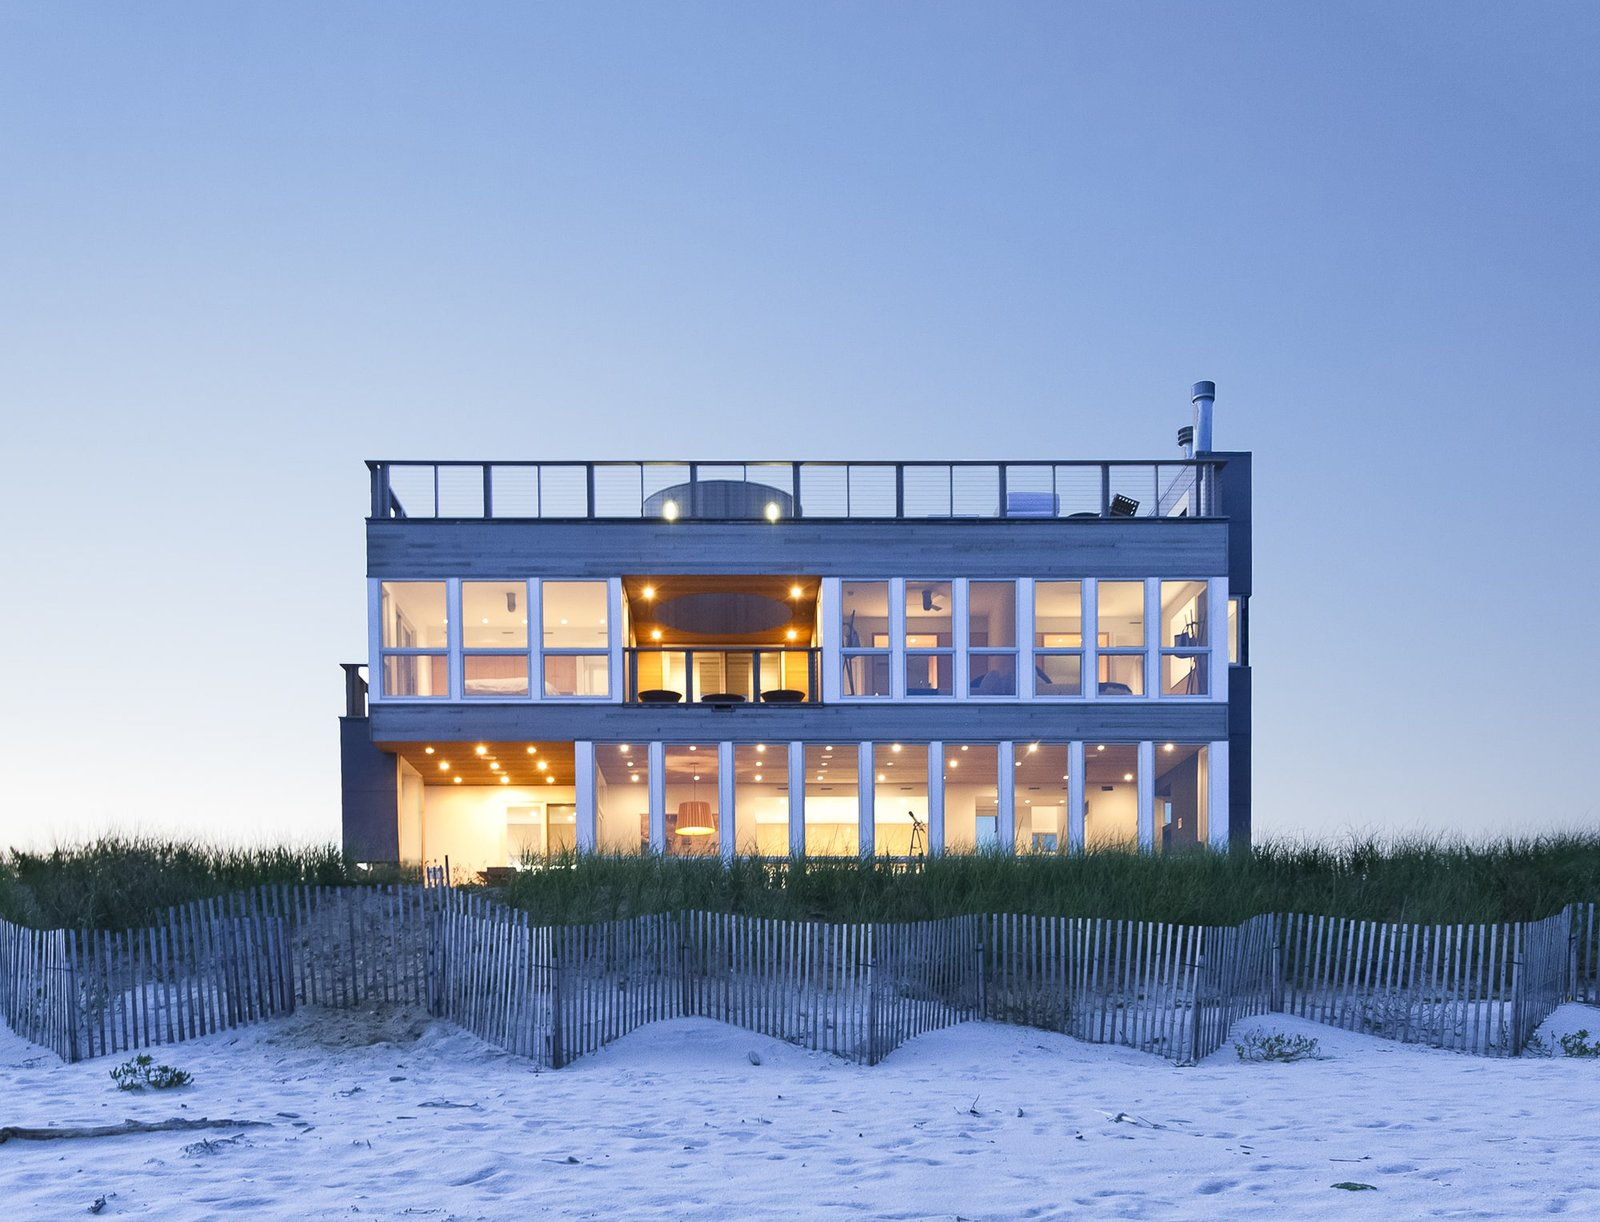 House Building Type, Wood Siding Material, Metal Siding Material, Grass, Wood Fences, Wall, Vertical Fences, Wall, Horizontal Fences, Wall, and Bedroom South elevation at dusk  Dune Road Beach House by Resolution: 4 Architecture